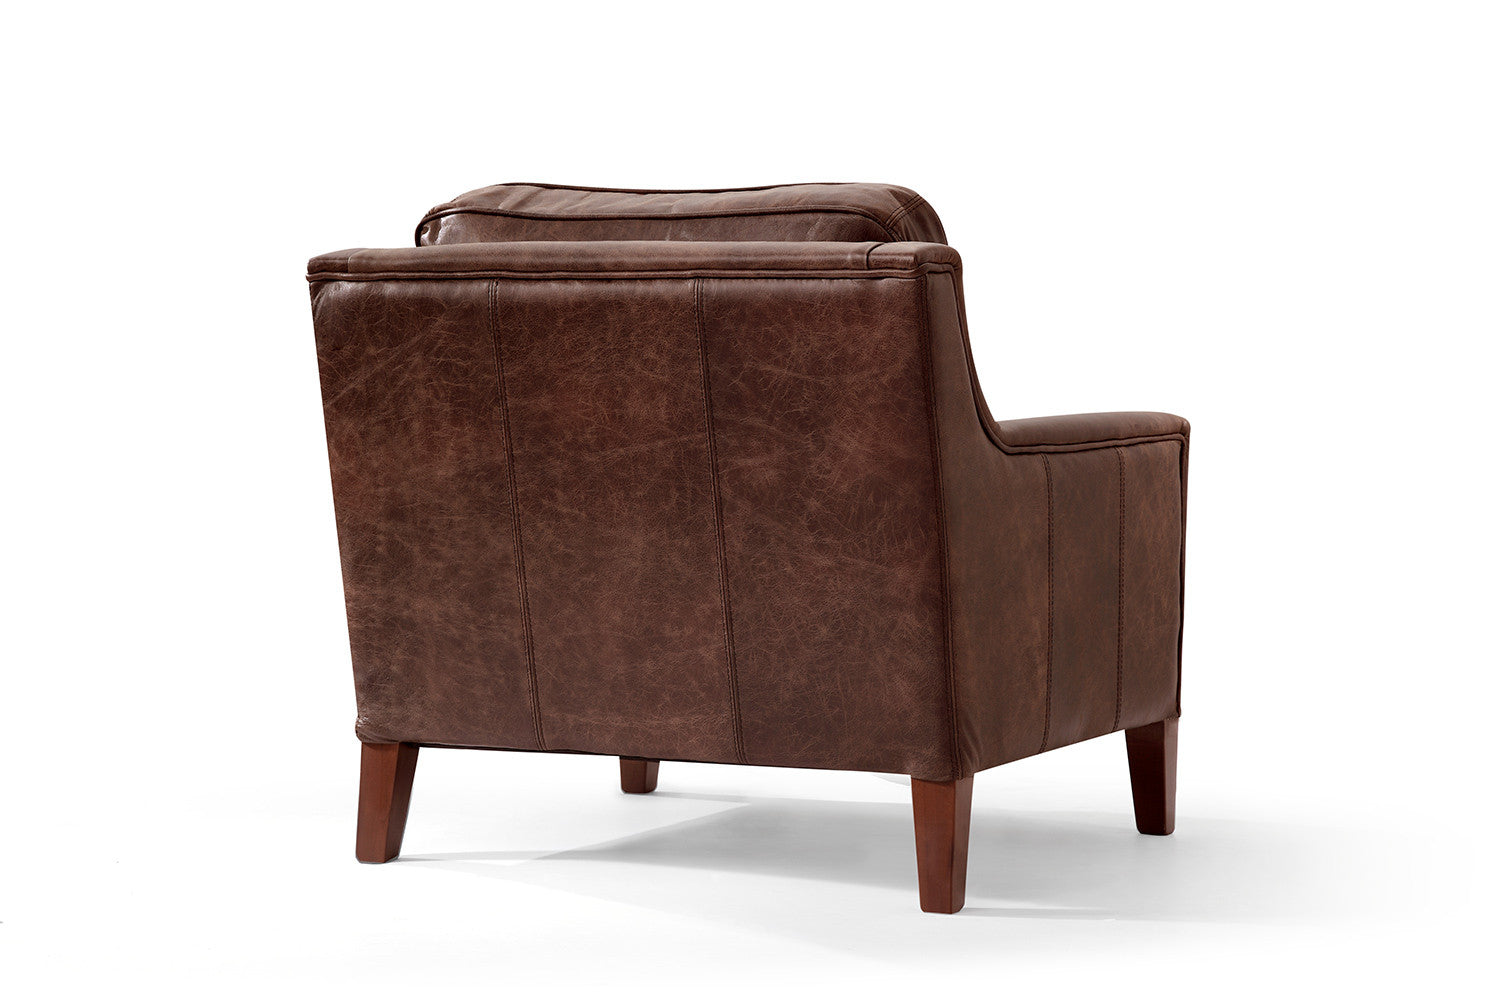 fauteuil anglais en cuir art d co oxford rose moore. Black Bedroom Furniture Sets. Home Design Ideas